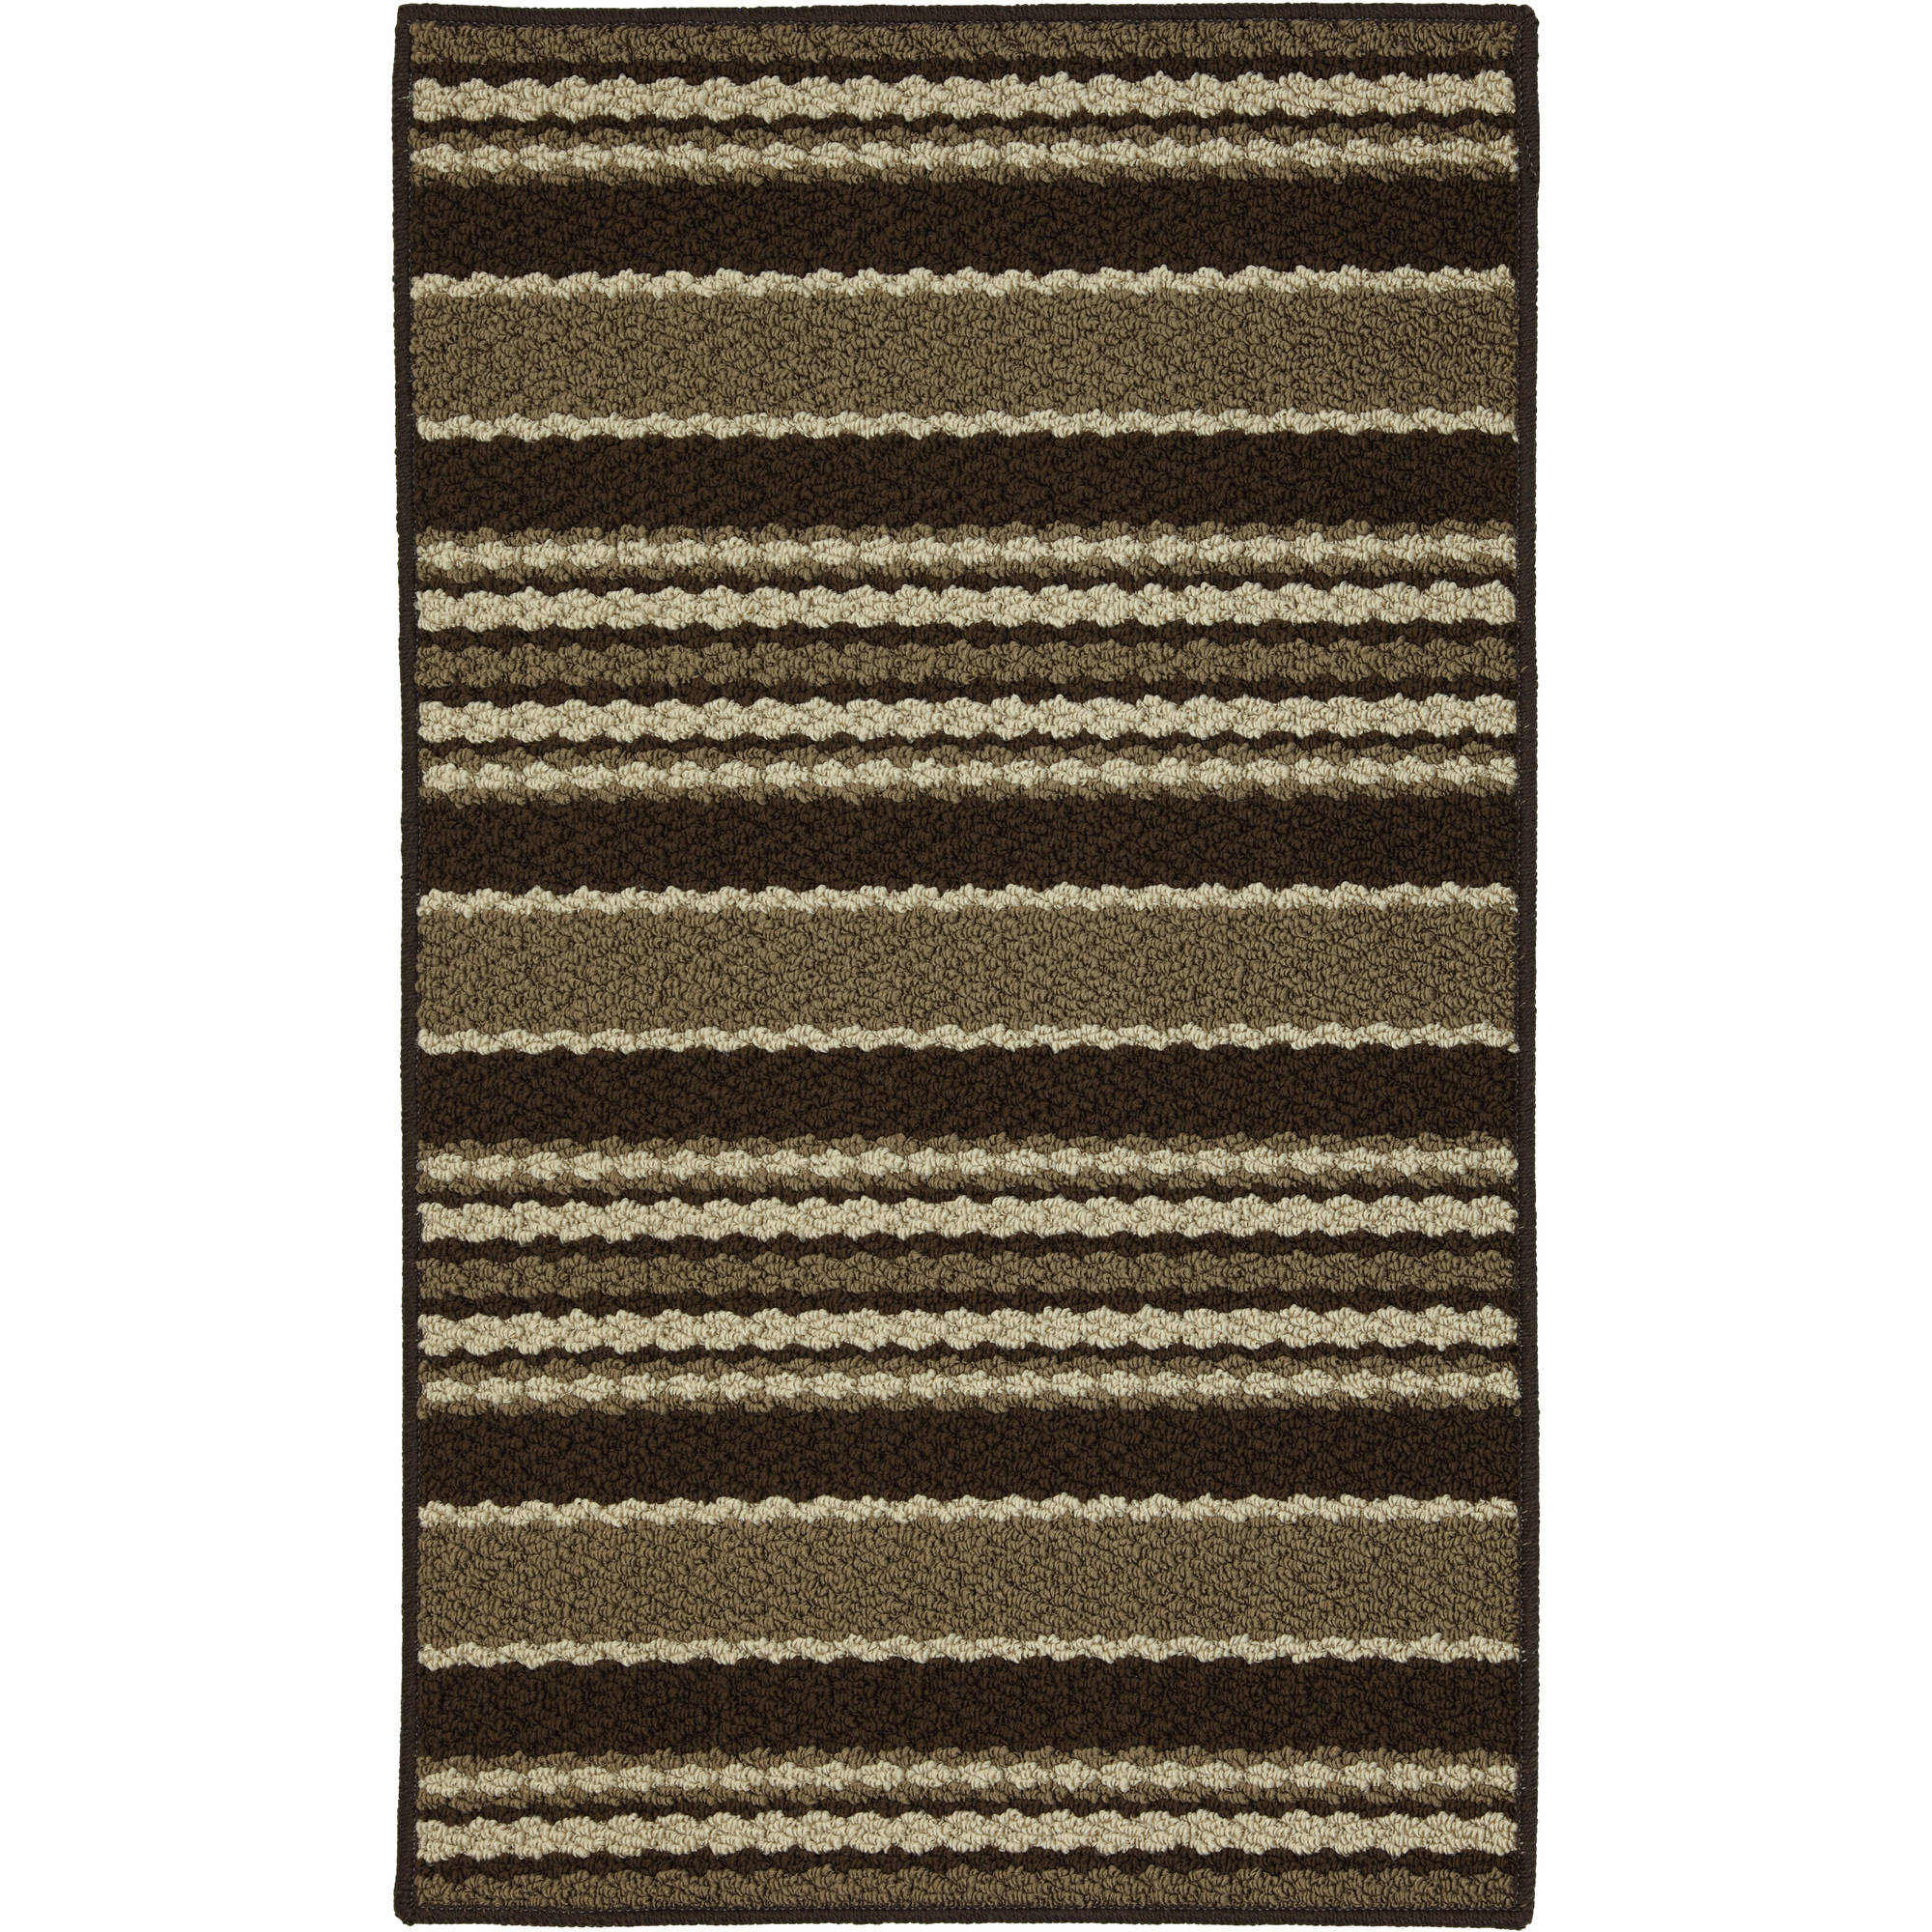 Mainstays Stripe Down Olefin Scatter Textured Area or Runner Rug